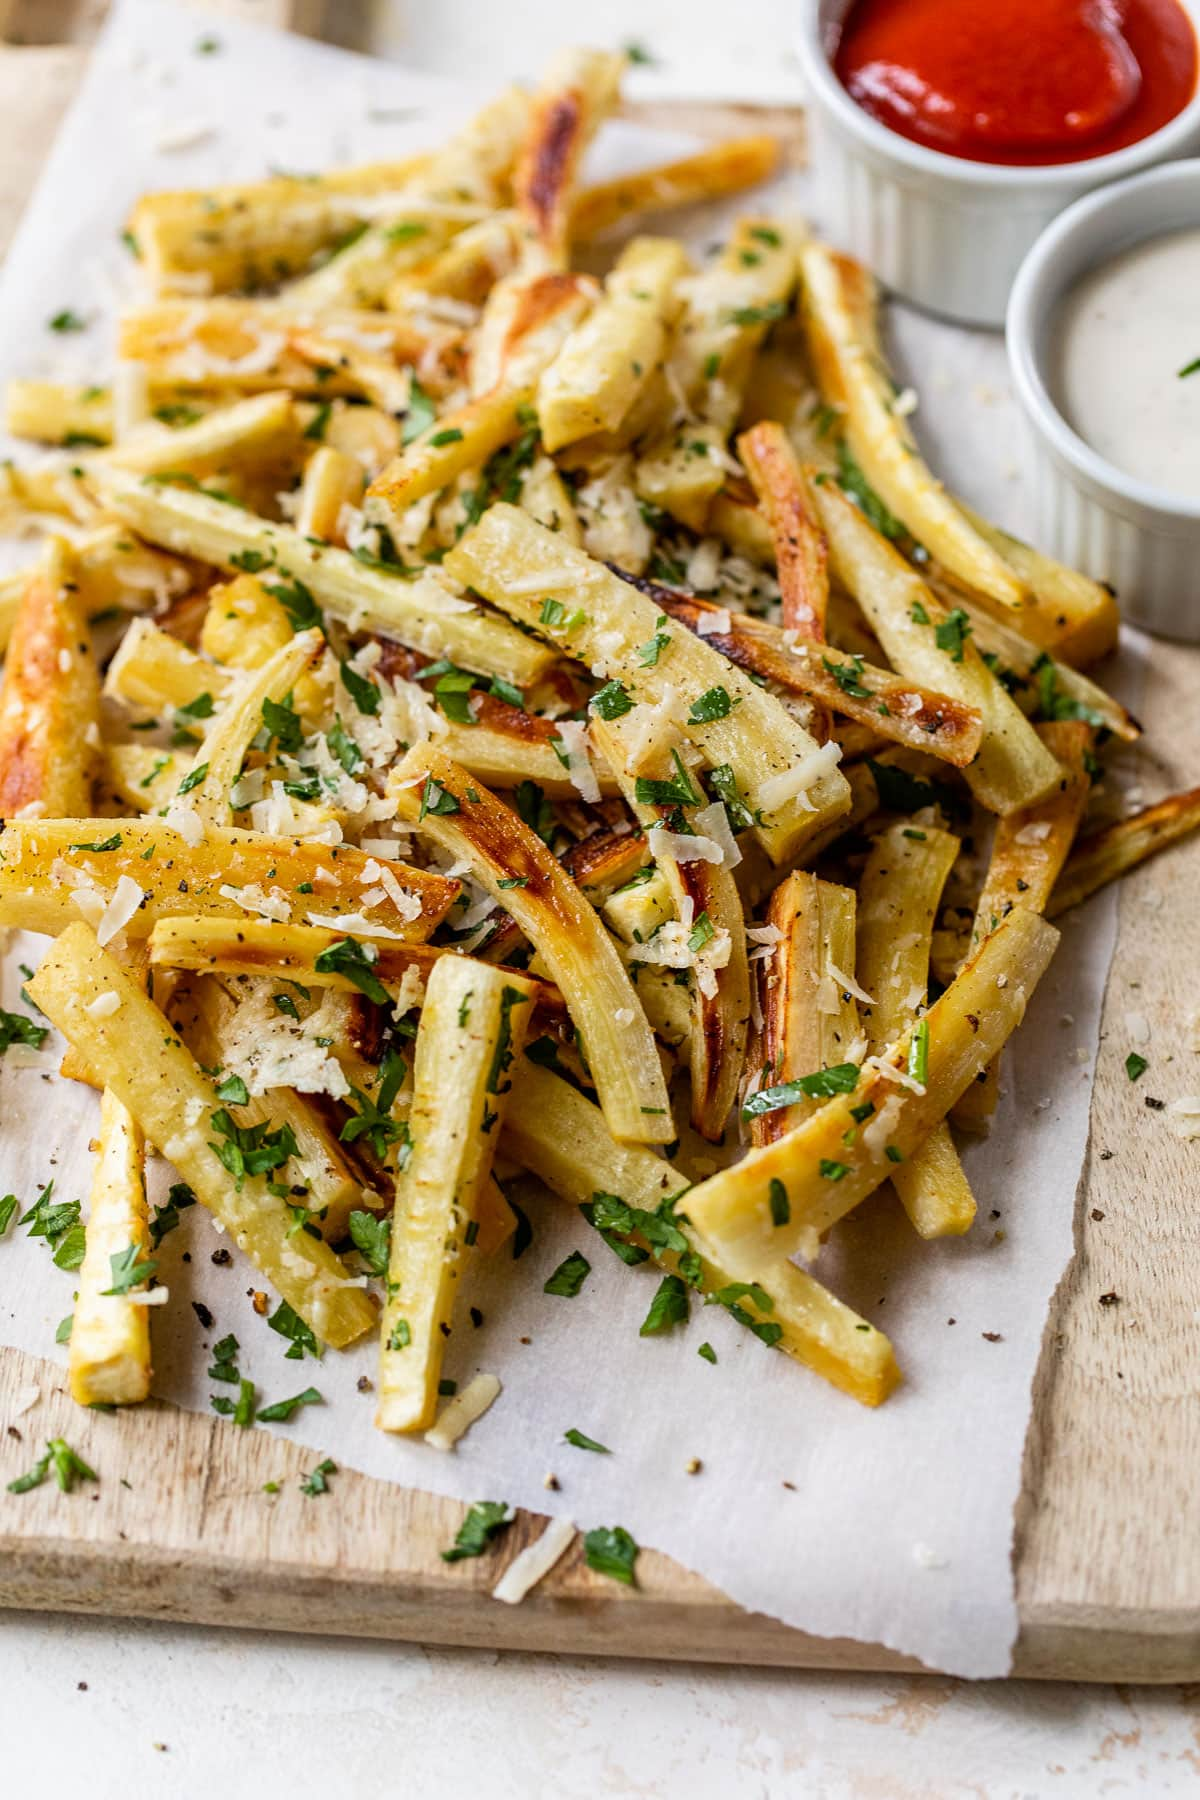 Parsnip Fries with Parsley and Parmesan